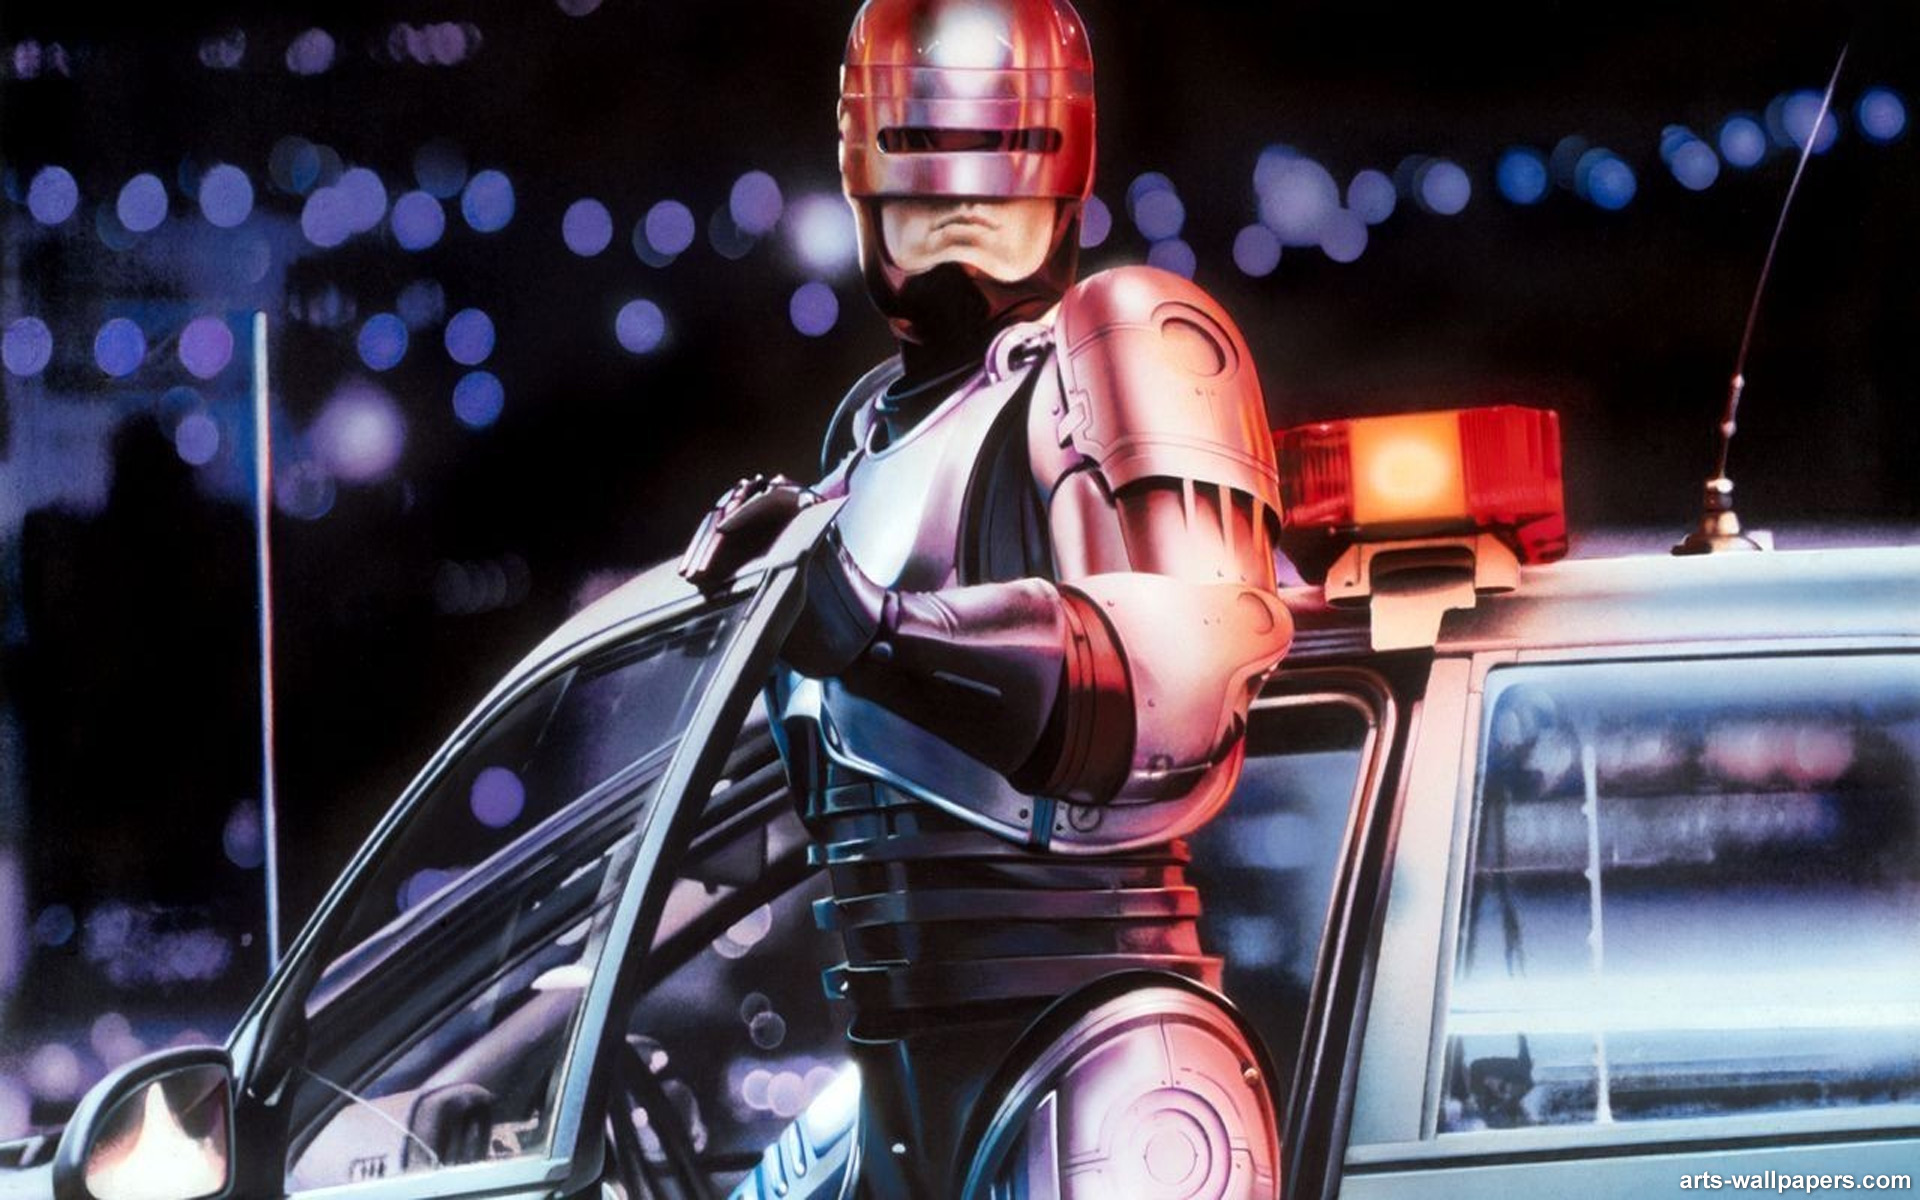 comPOSERS Episode 67: Robocop